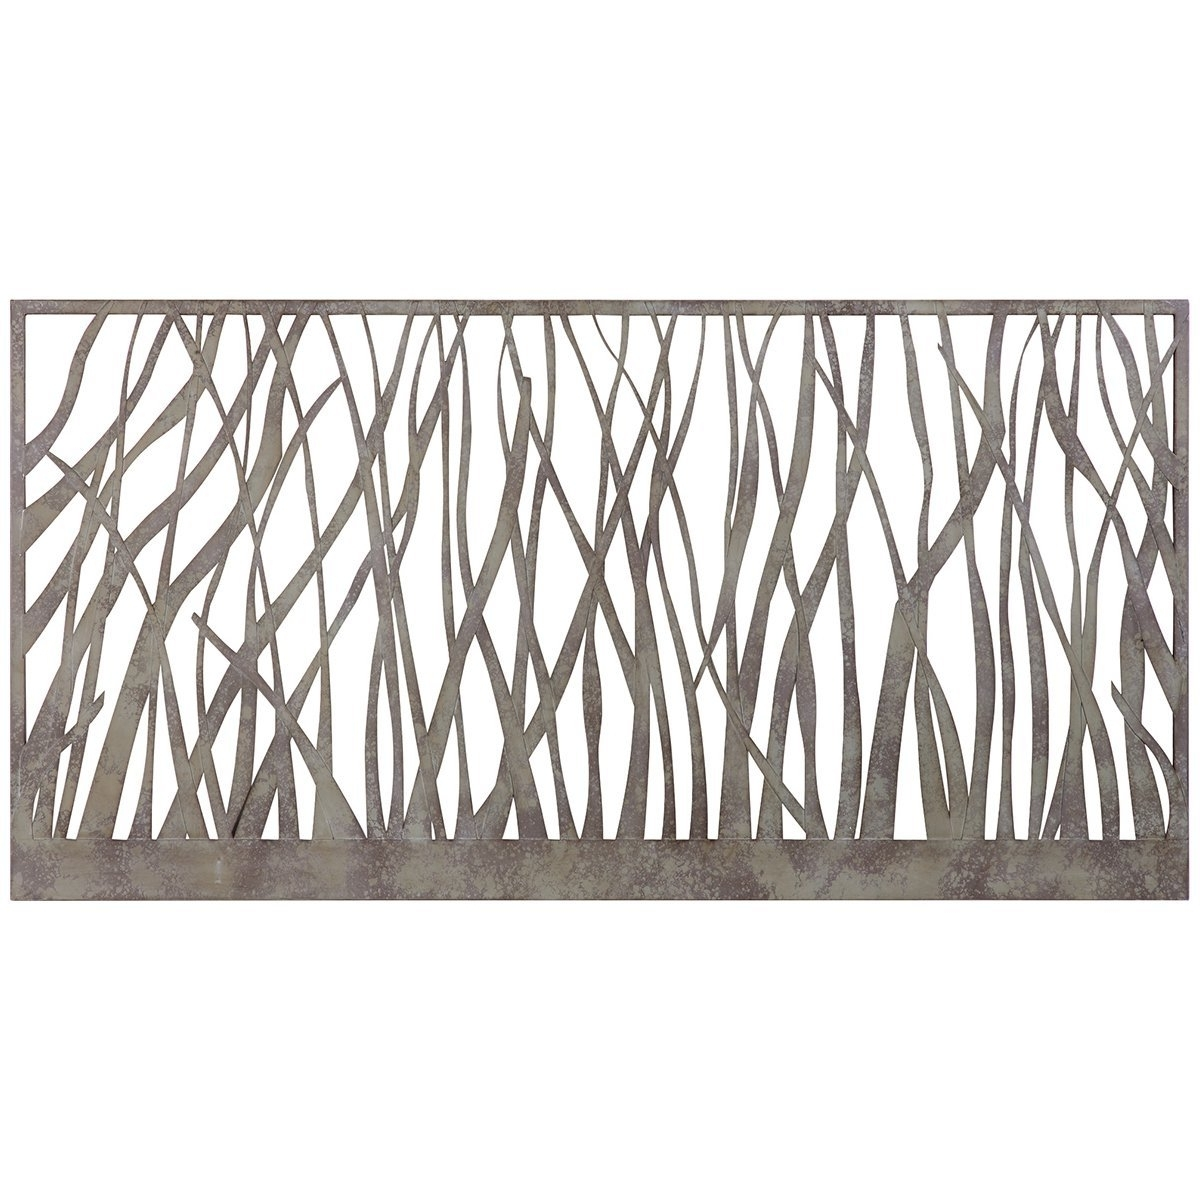 Uttermost Metal Wall Art Inside Trendy Amazon: Uttermost 13931 Amadahy Metal Wall Art: Home & Kitchen (View 10 of 15)